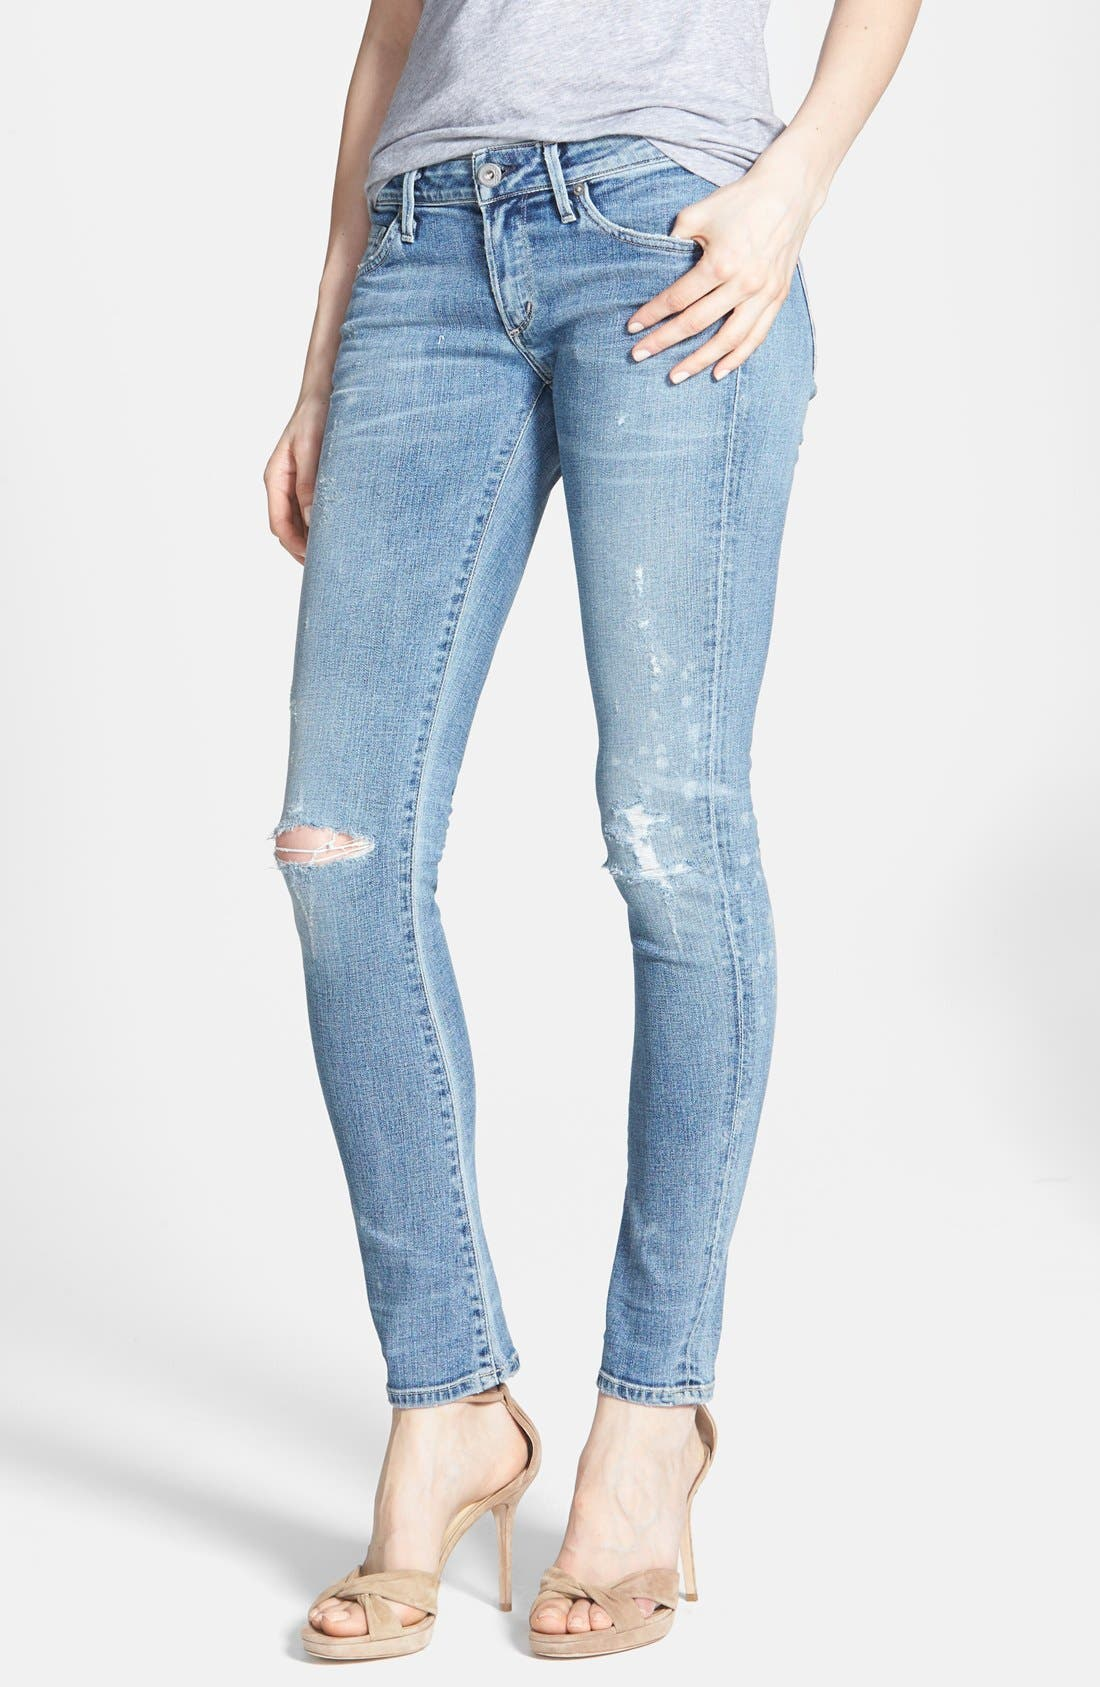 Main Image - Citizens of Humanity 'Premium Vintage - Racer' Distressed Skinny Jeans (Crosby)